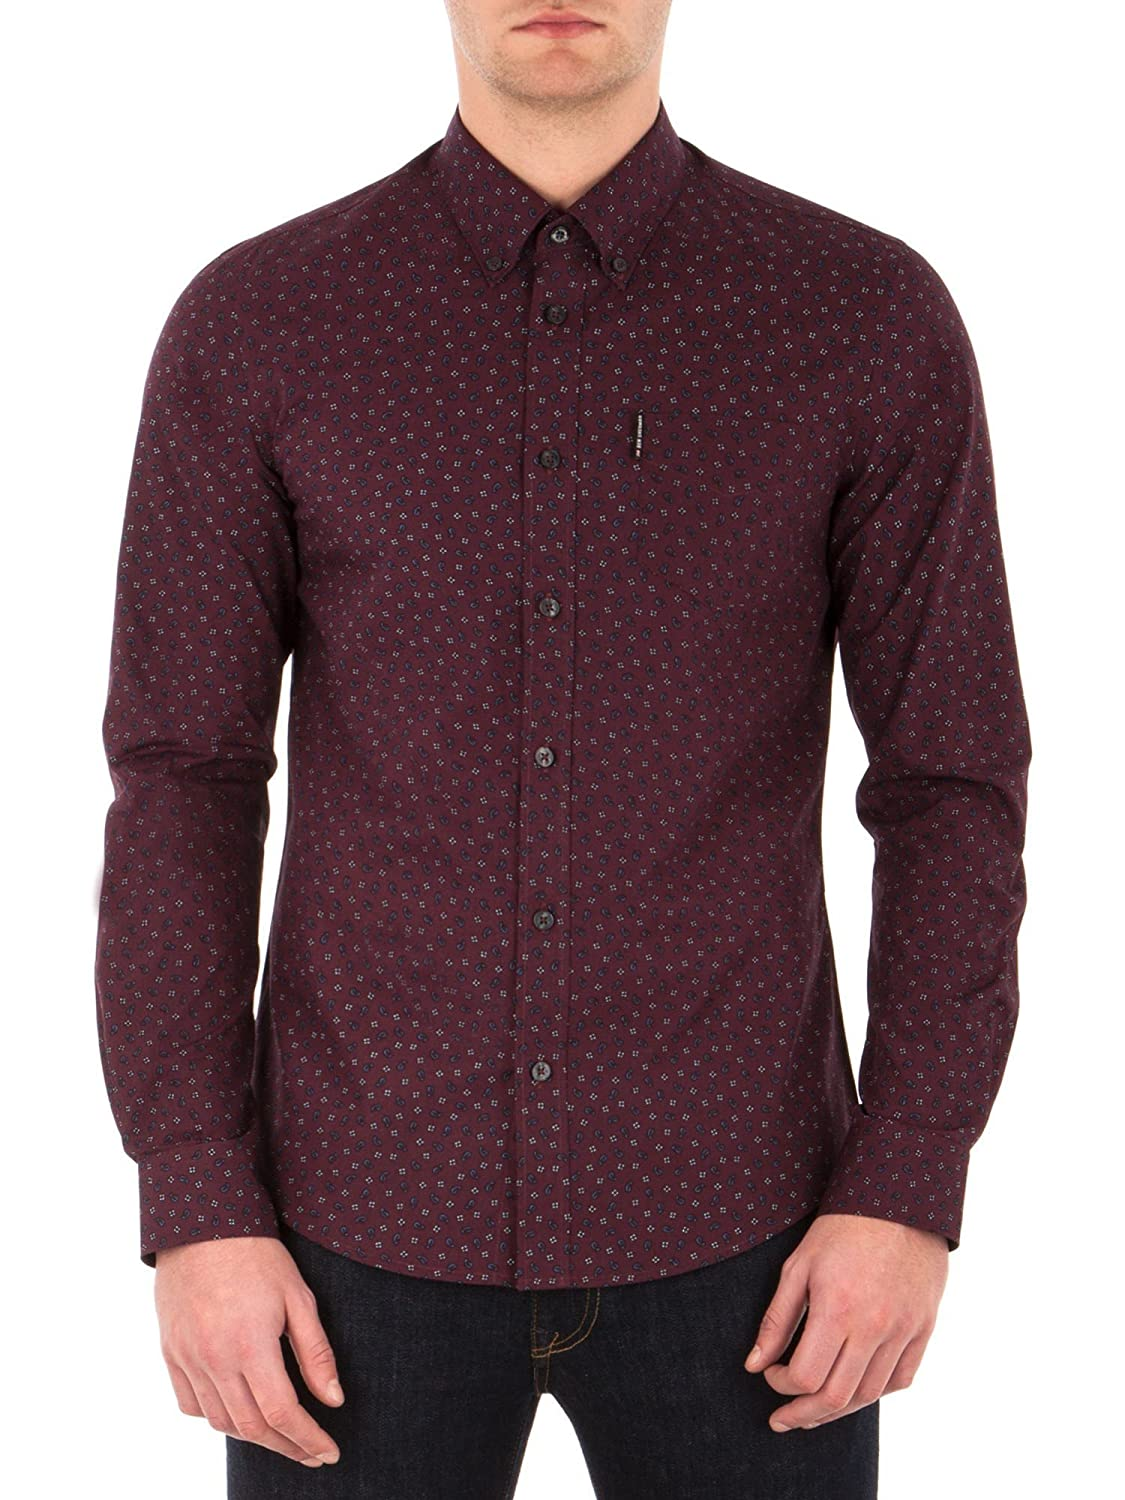 Soho Print Party Shirt - MA13342 Slim Fit (Soho Fit)